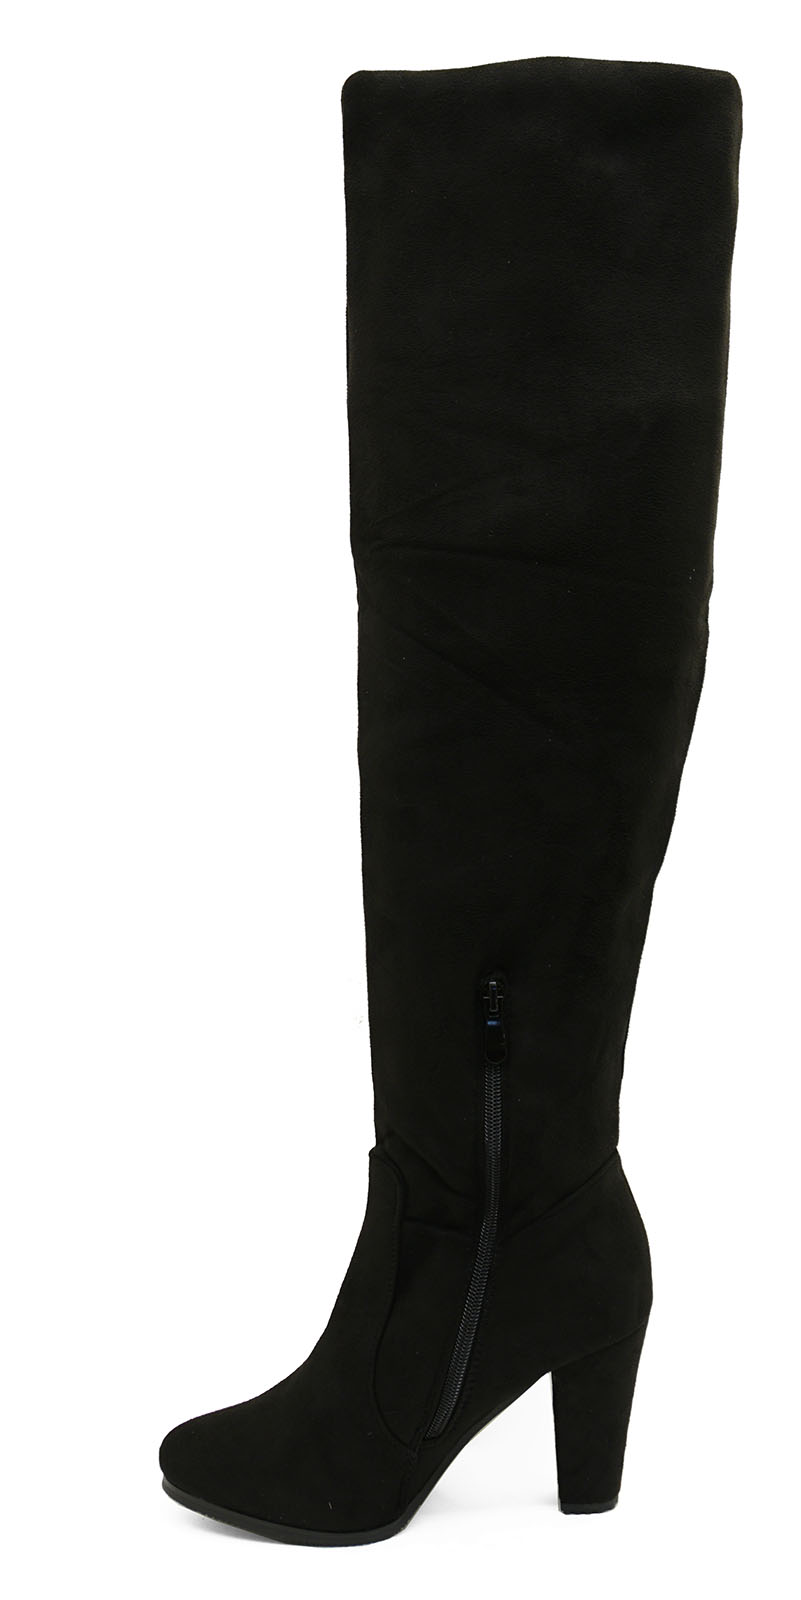 LADIES BLACK SOFT STRETCH OVER THE KNEE